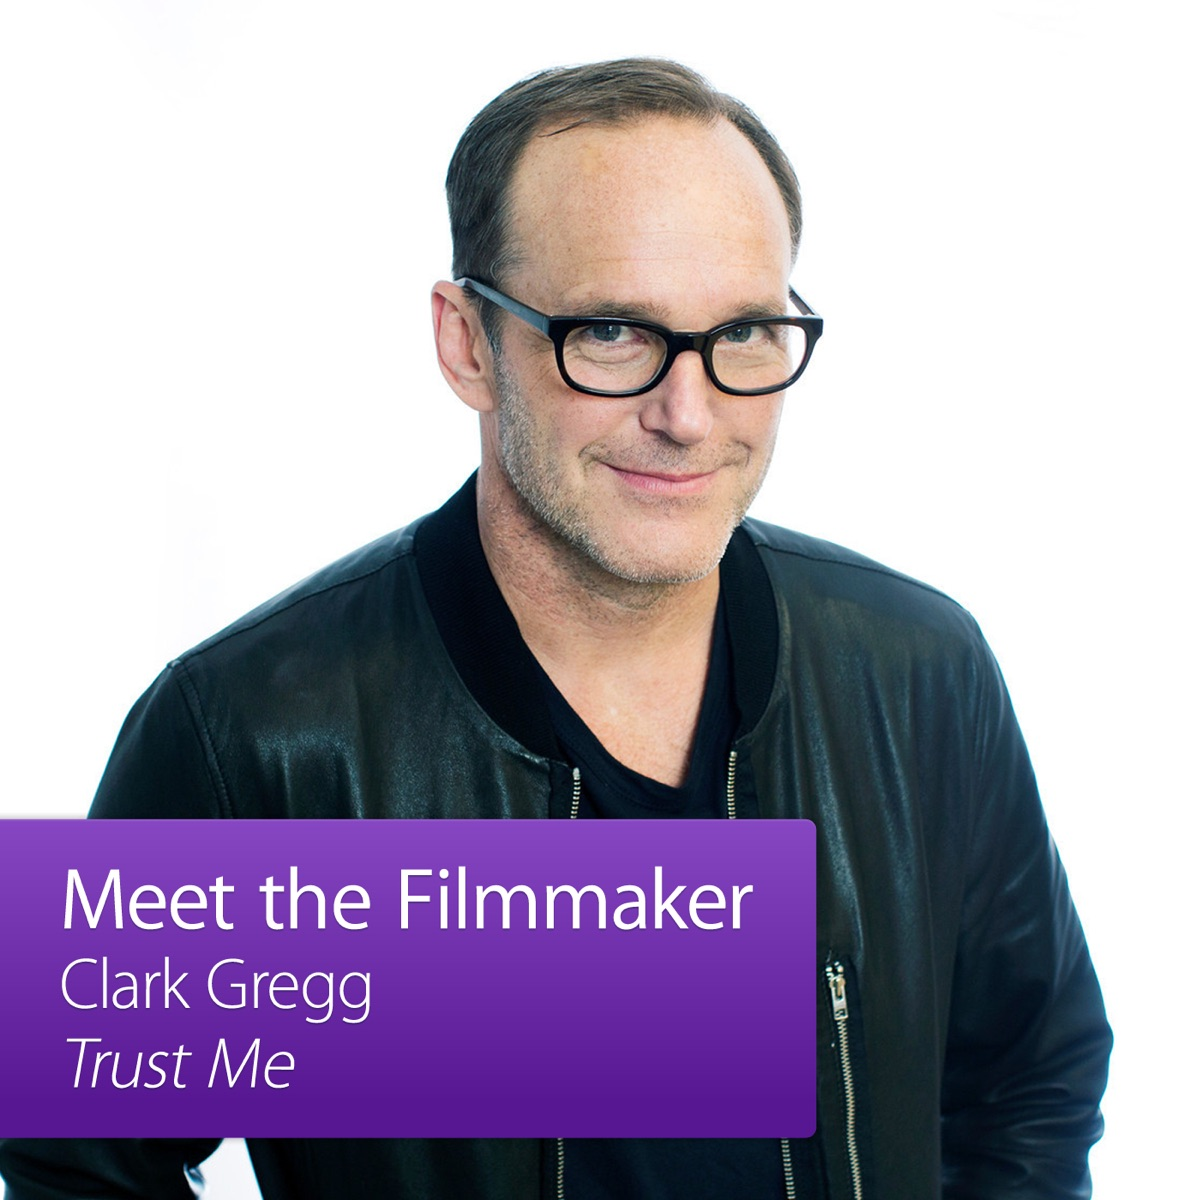 Clark Gregg, Trust Me: Meet the Filmmaker